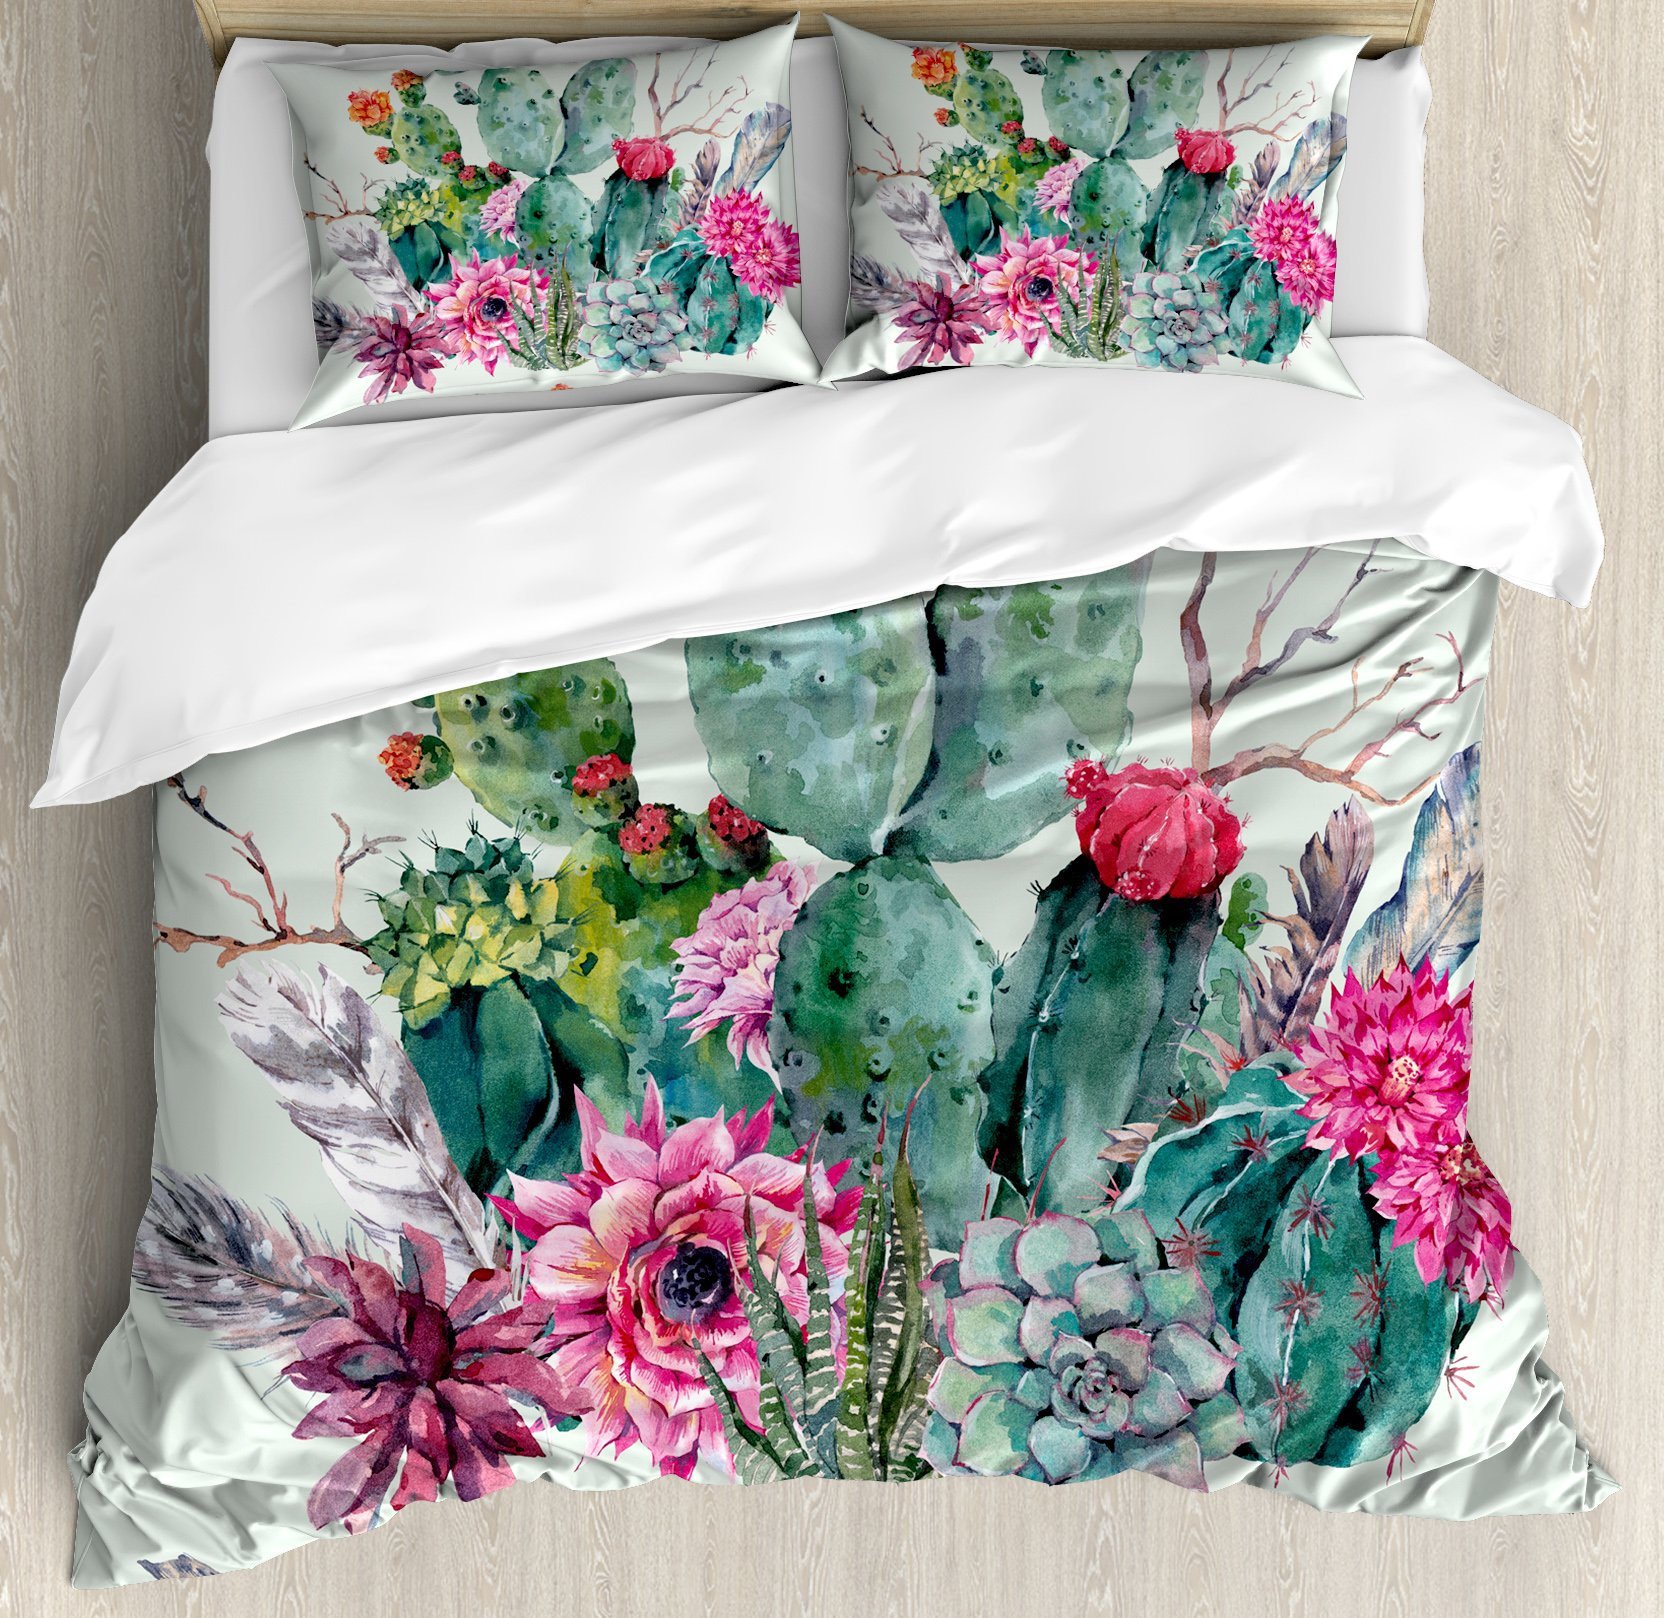 Ambesonne Cactus Duvet Cover Set, Spring Garden with Boho Style Bouquet of Thorny Plants Blossoms Arrows Feathers, Decorative 3 Piece Bedding Set with 2 Pillow Shams, King Size, White Pearl by Ambesonne